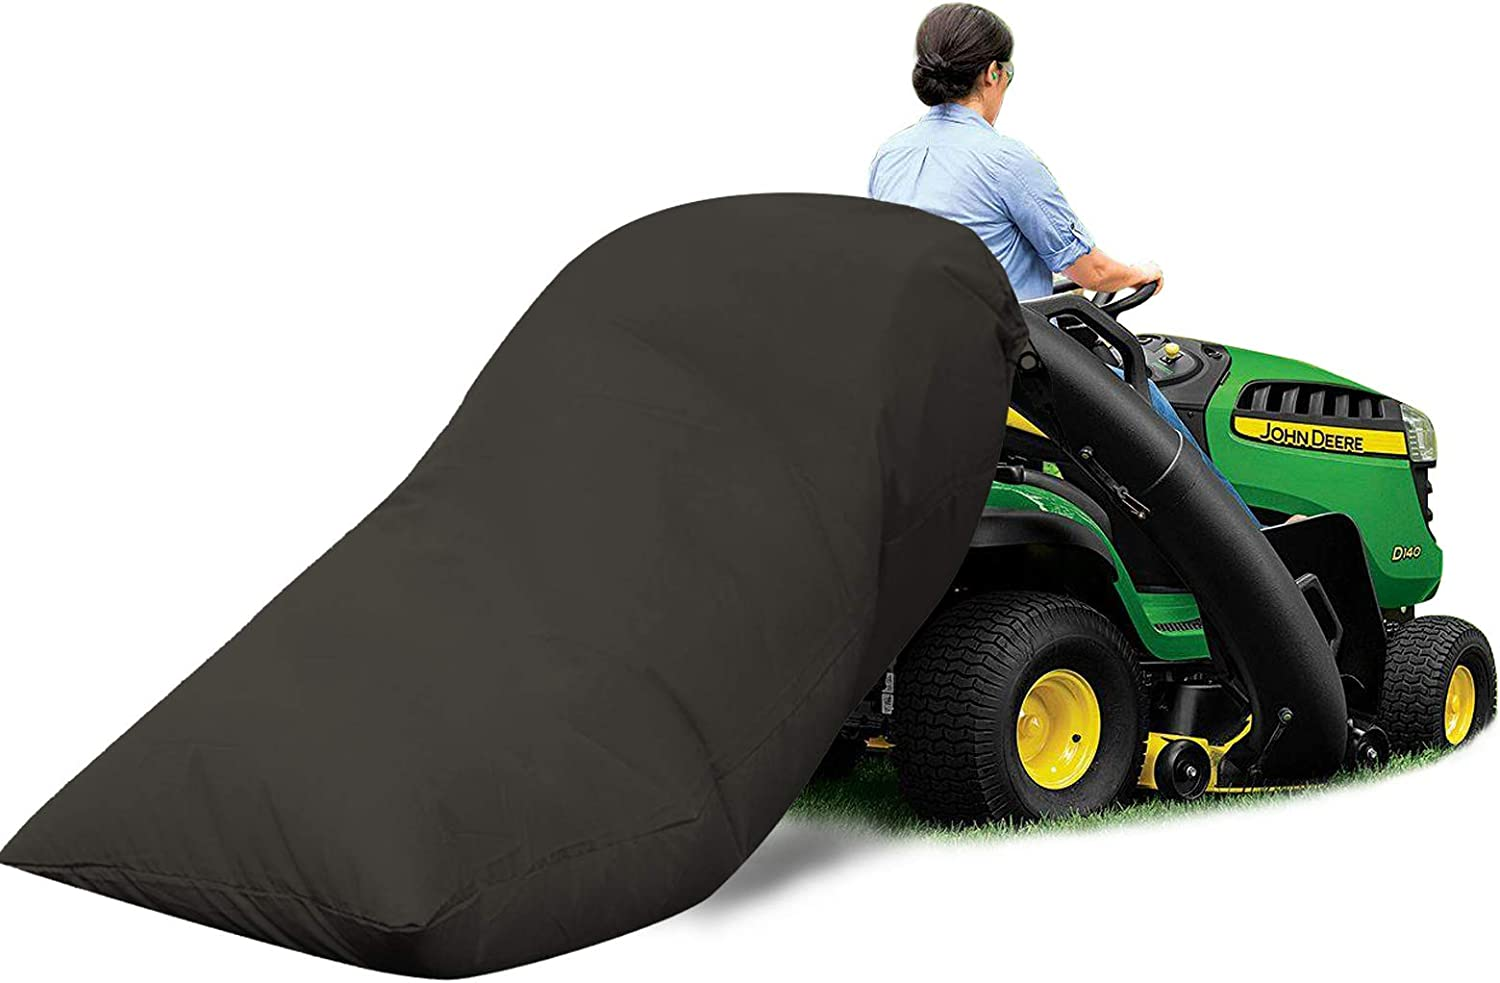 SurmountWay Lawn Tractor Leaf Bag-54 Cubic Foot Standard Leaf Bag, Heavy Duty Material – Fast & Easy Leaf Collection,Reusable Collecting Leaves Waste Bag Fits All Lawn Tractors(Black)